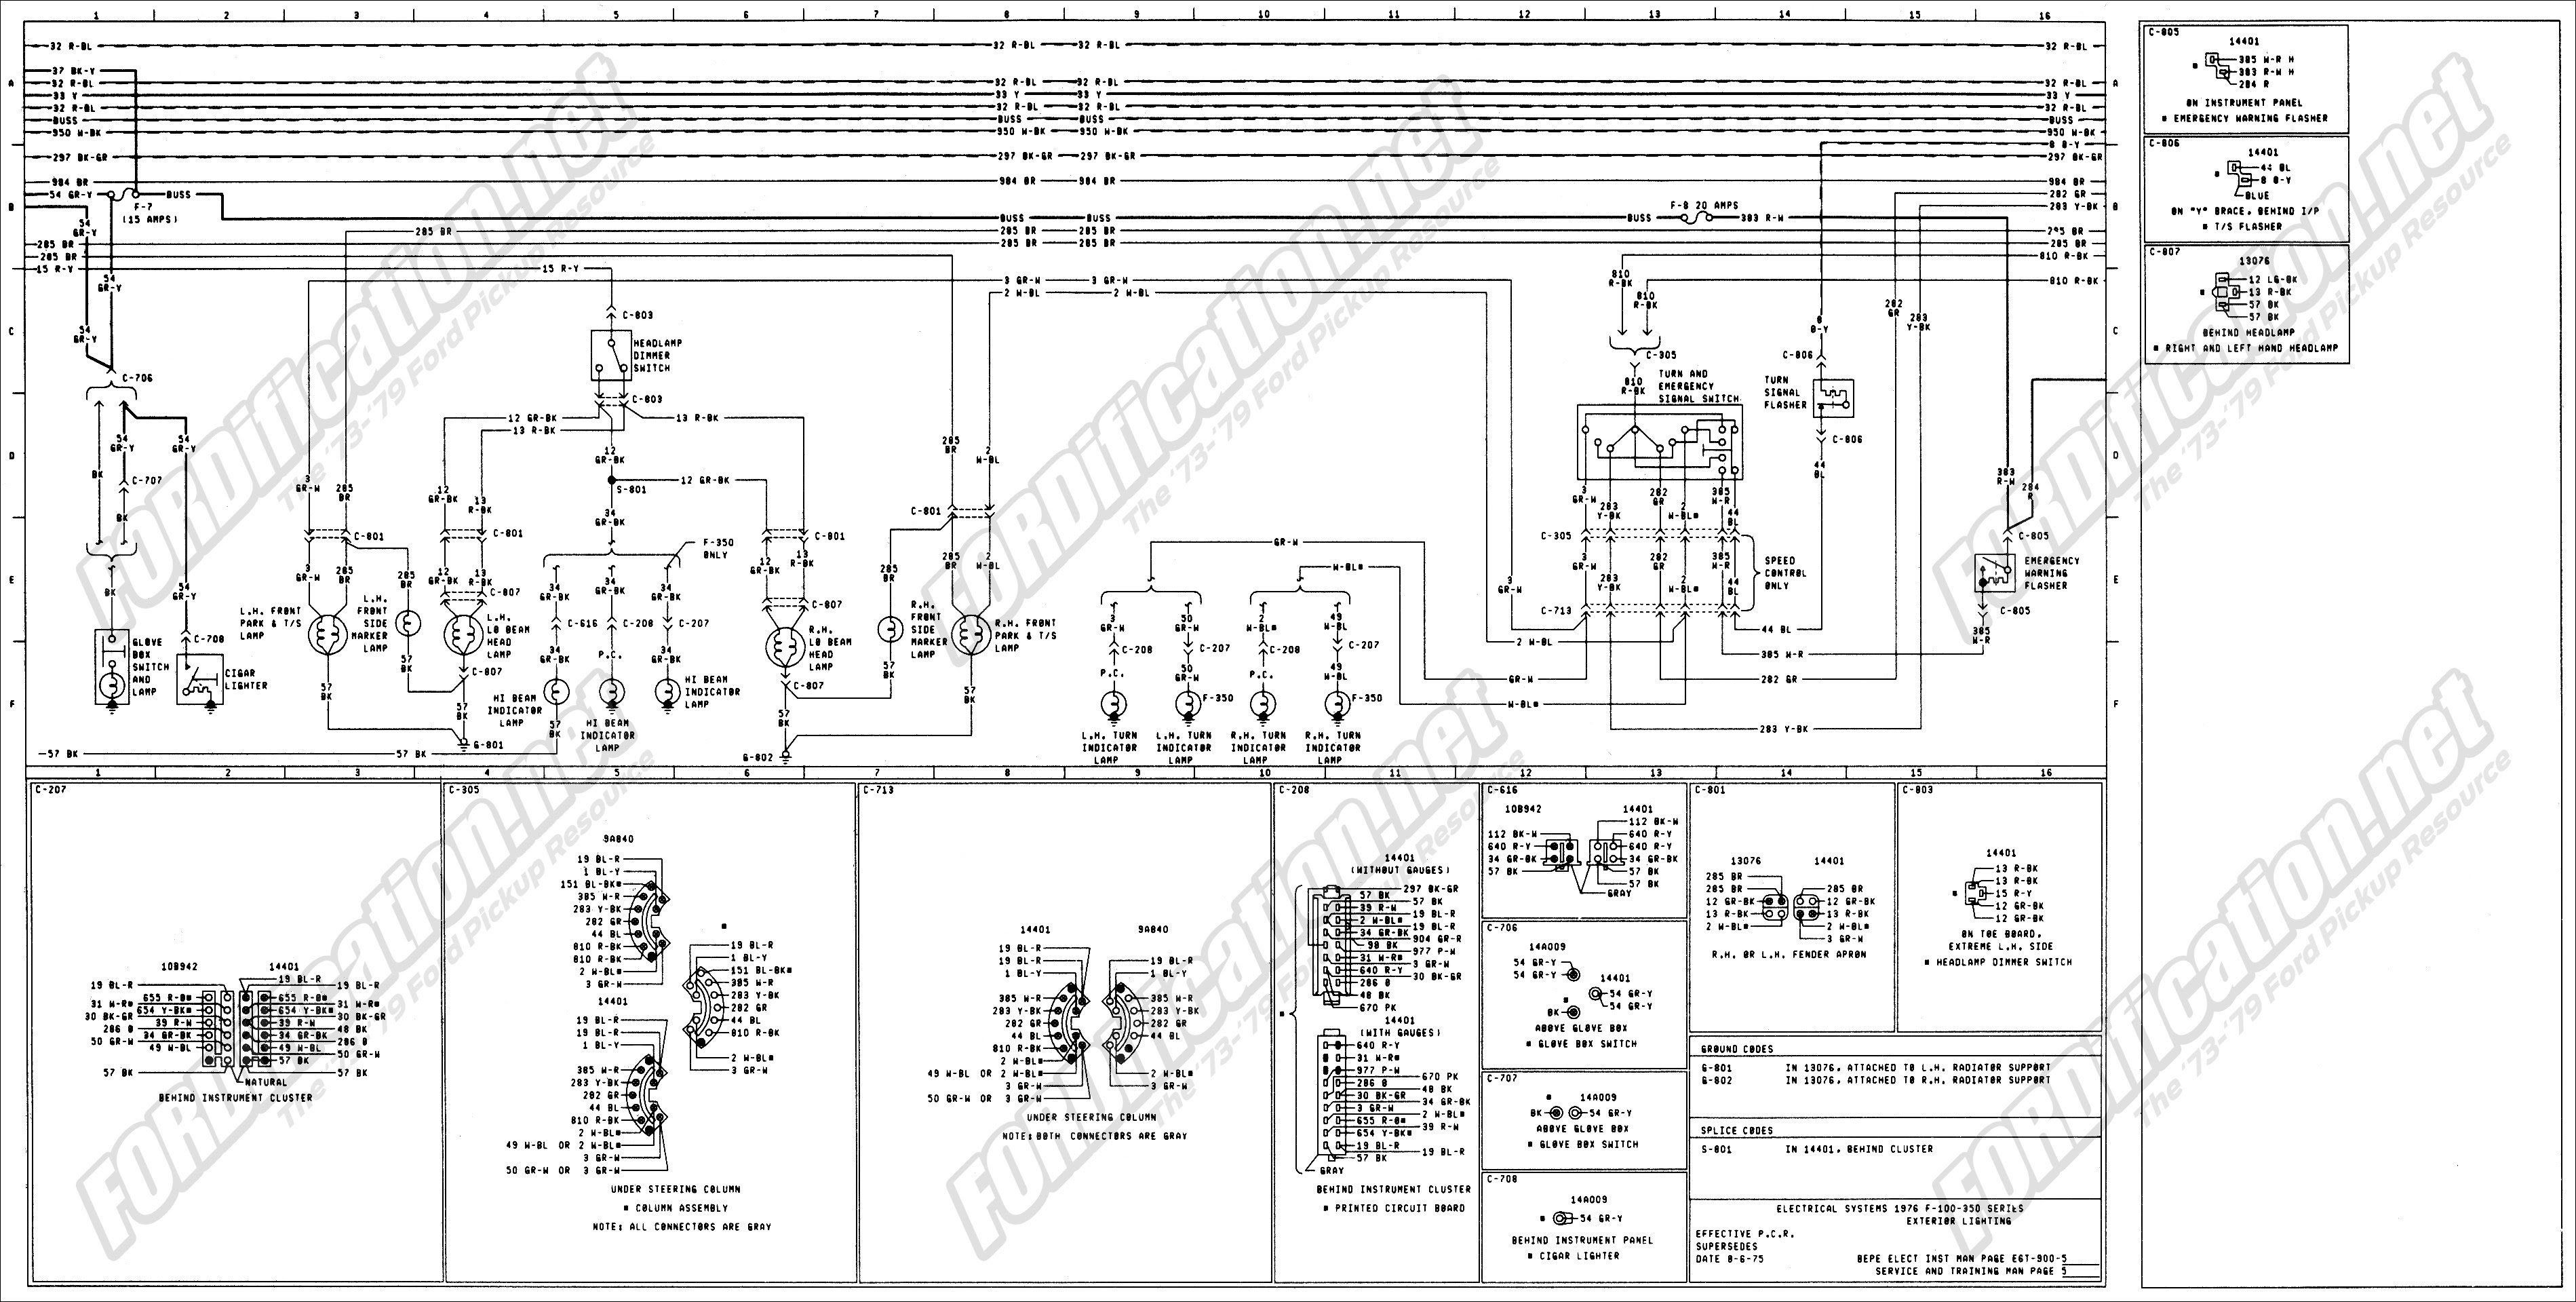 5915a5 Ford F250 Wiring Diagram For Trailer Lights Wiring Diagram Wiring Library